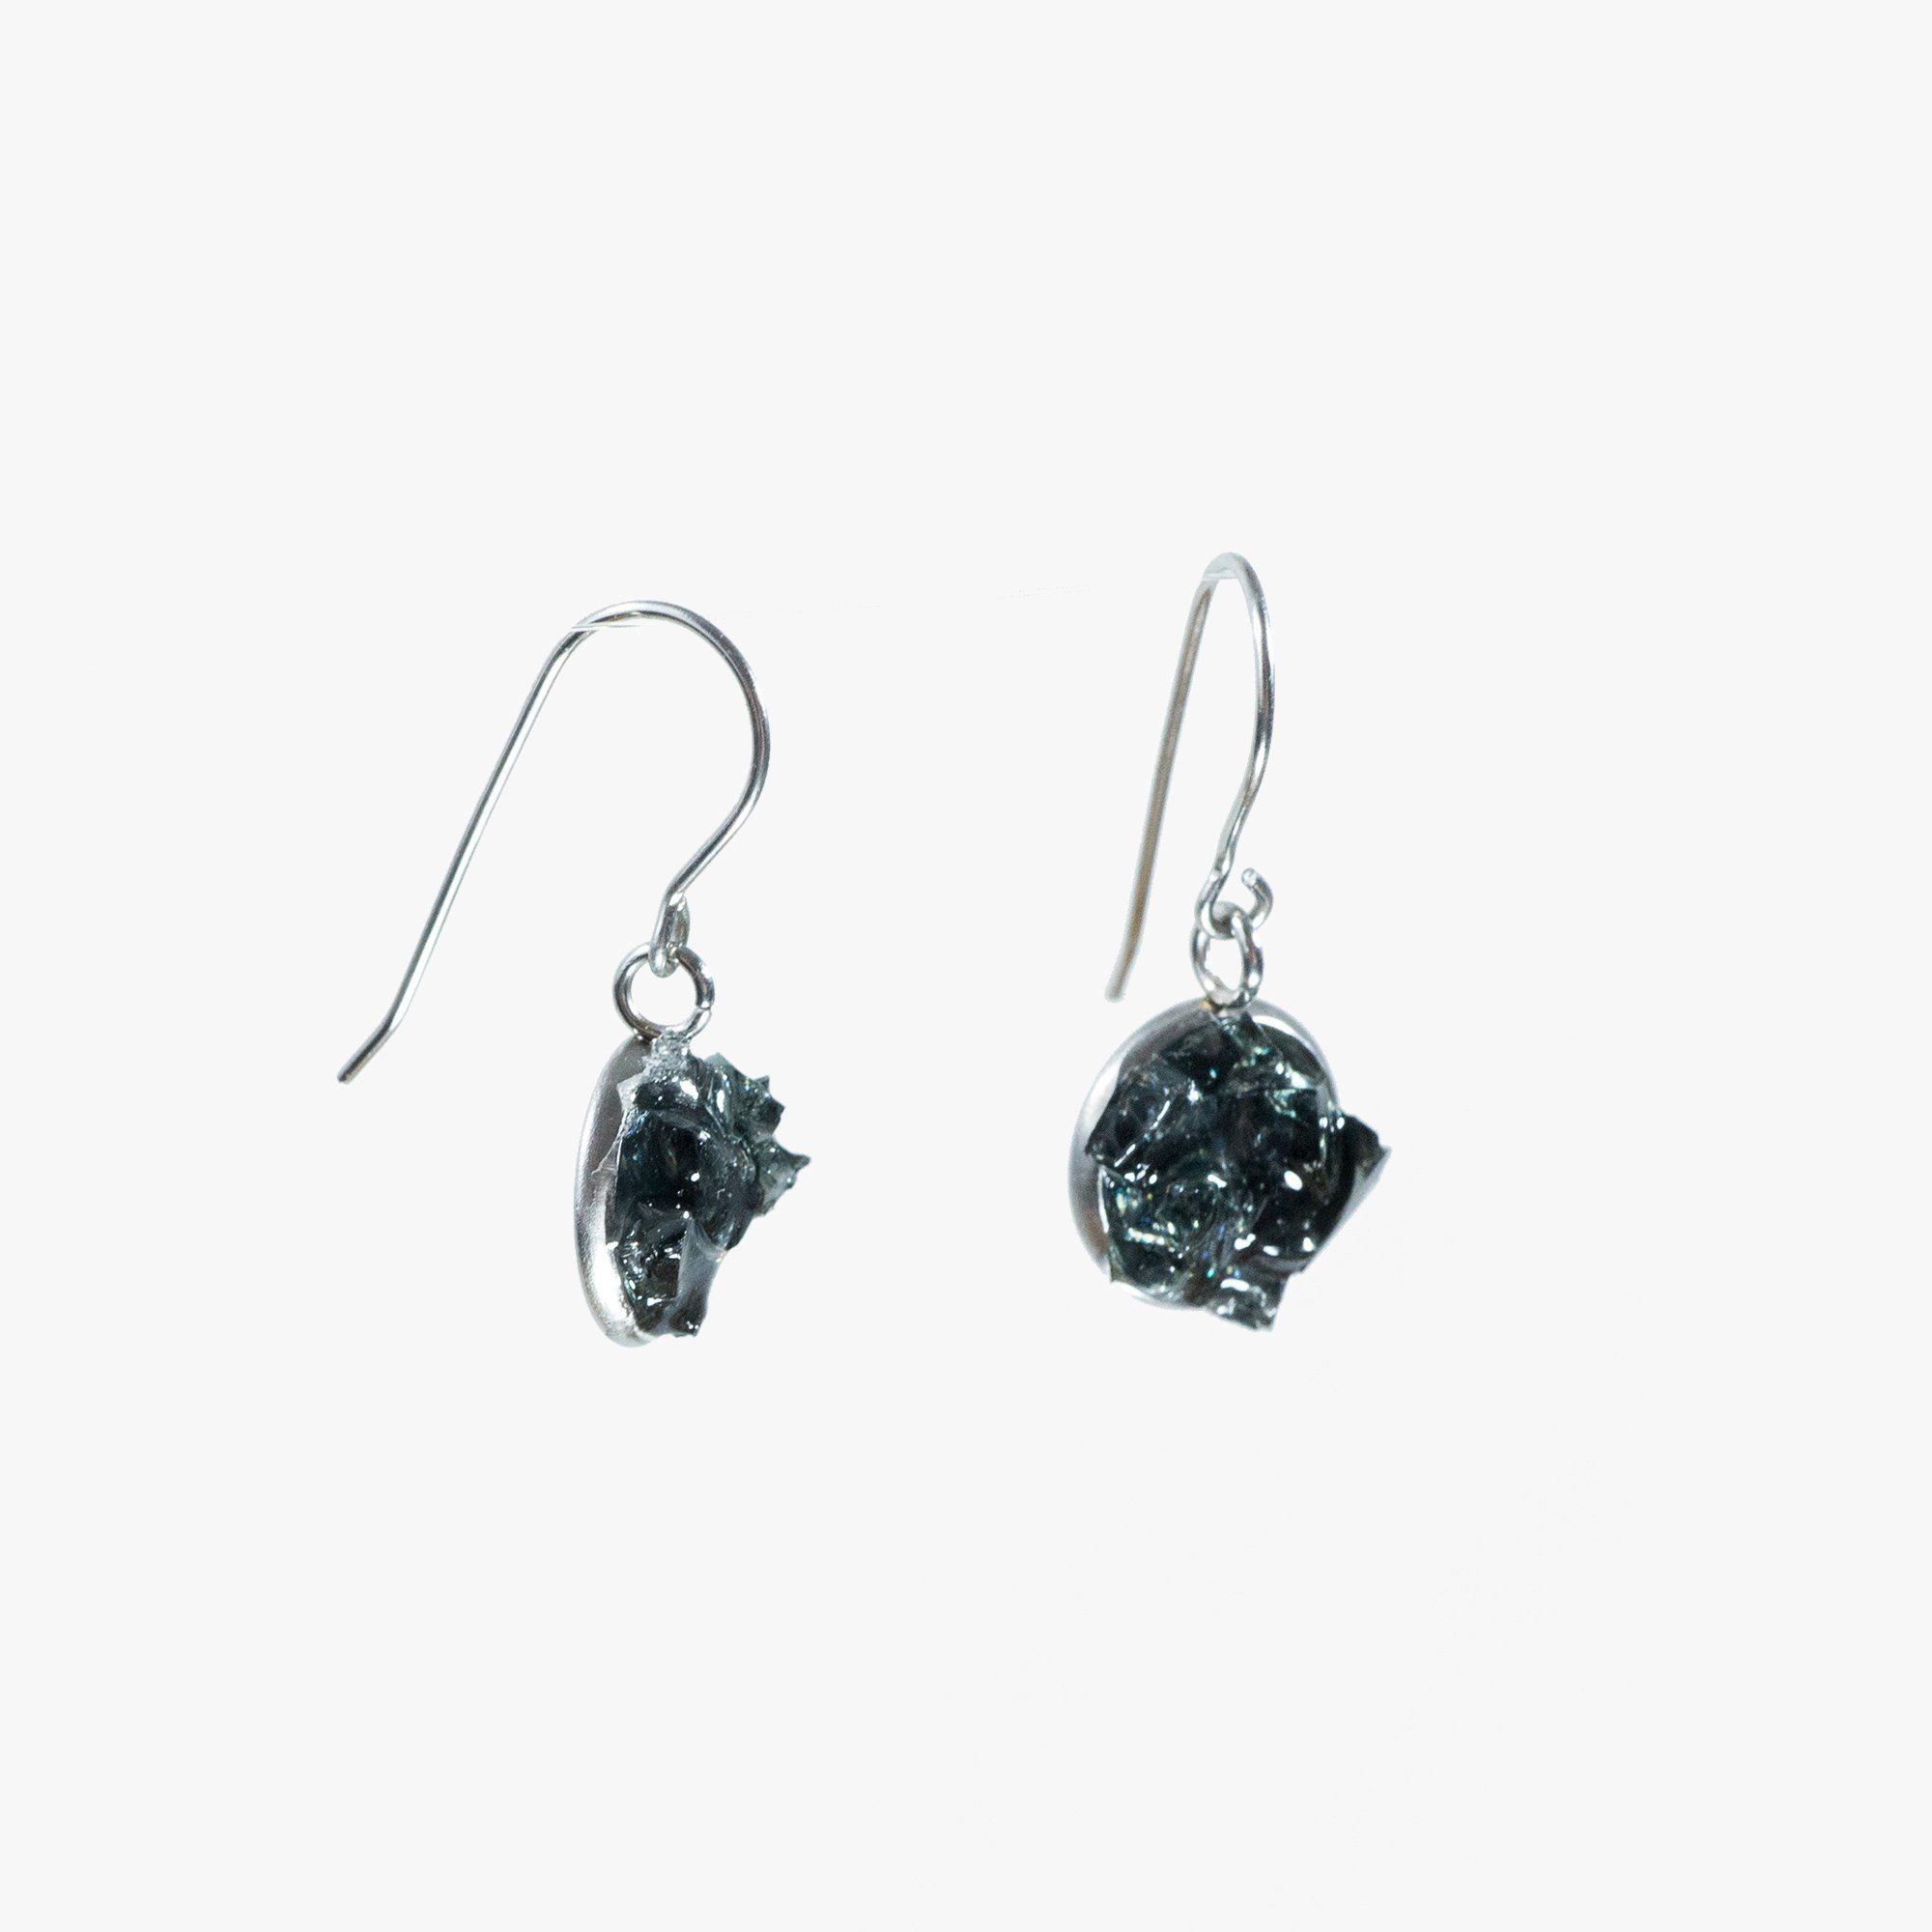 Auto Glass Earring - Cluster Dangle Small Black Cluster Cleveland Street Glass